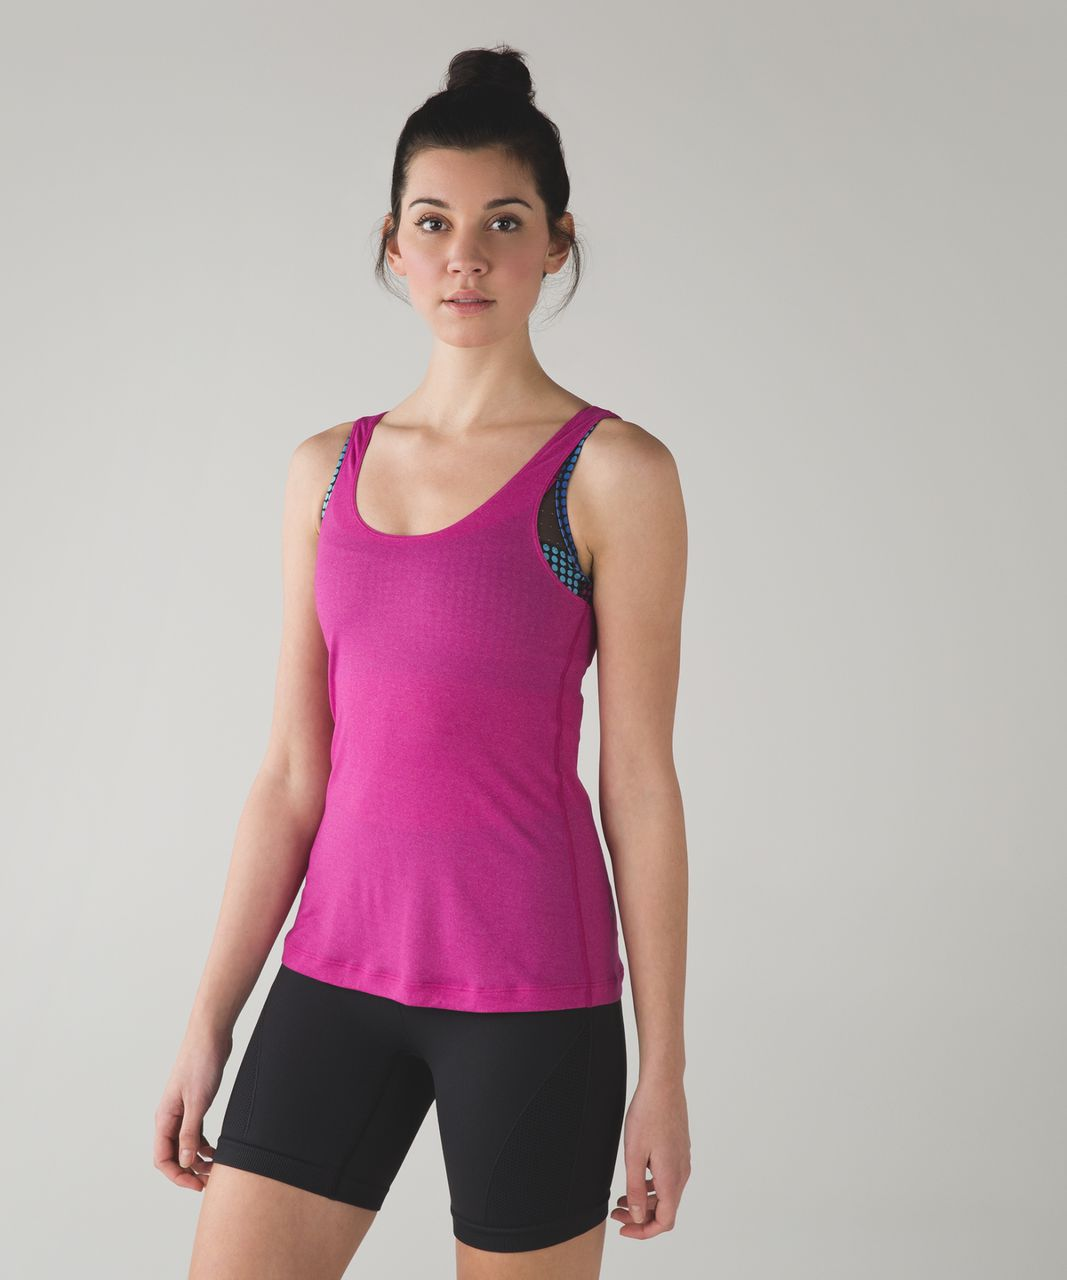 Lululemon Sweaty Endeavor Tank - Raspberry / Cosmic Dot White Multi / Black